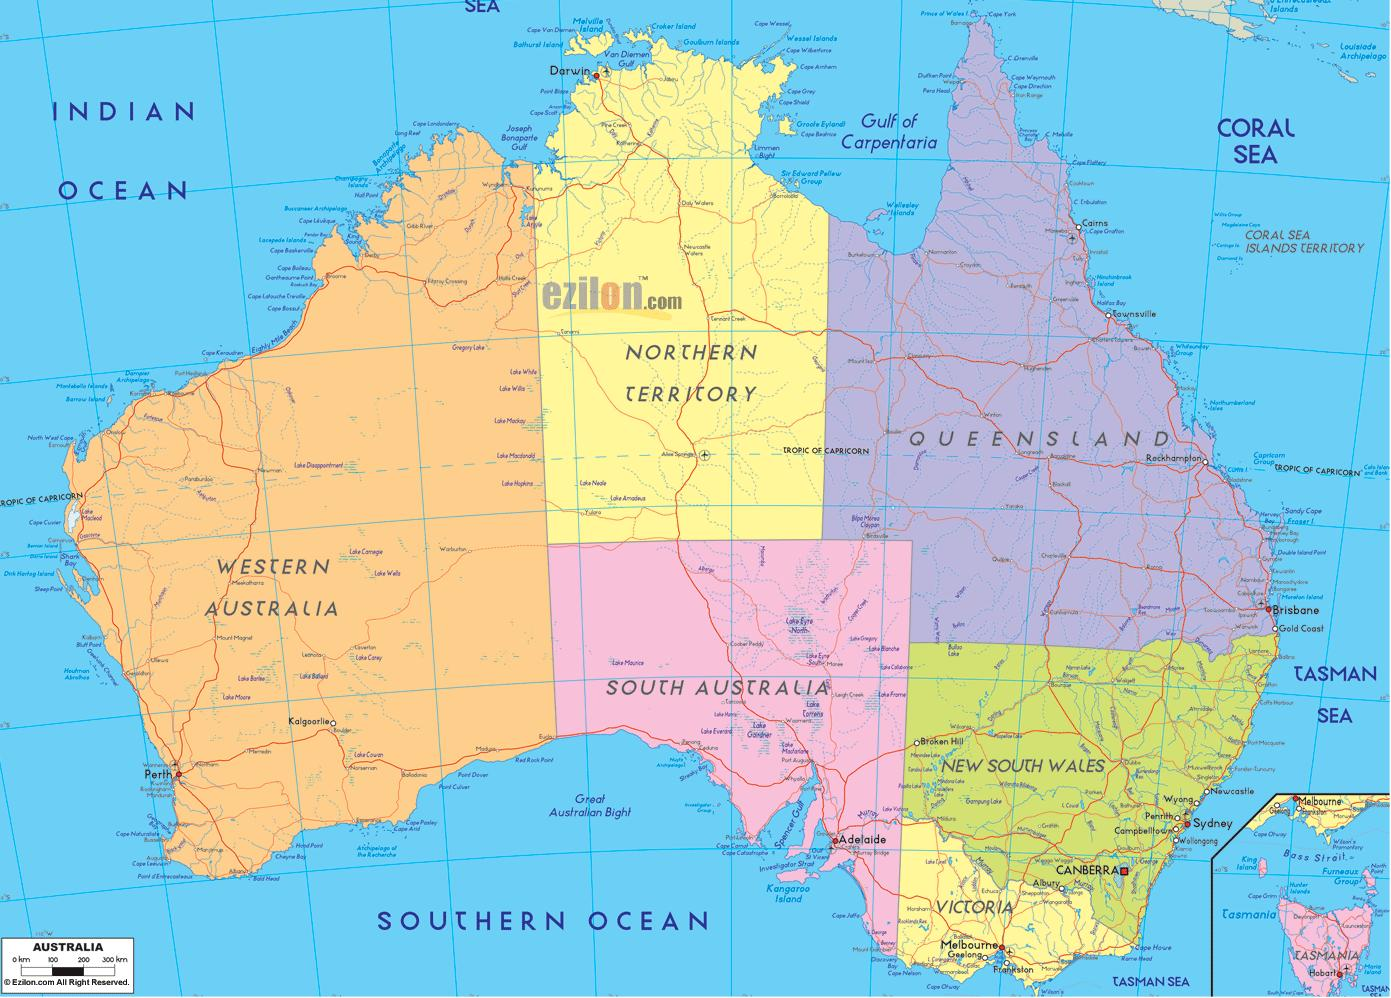 Kort Over Australien Hd Kort Over Australien Hd Australien Og